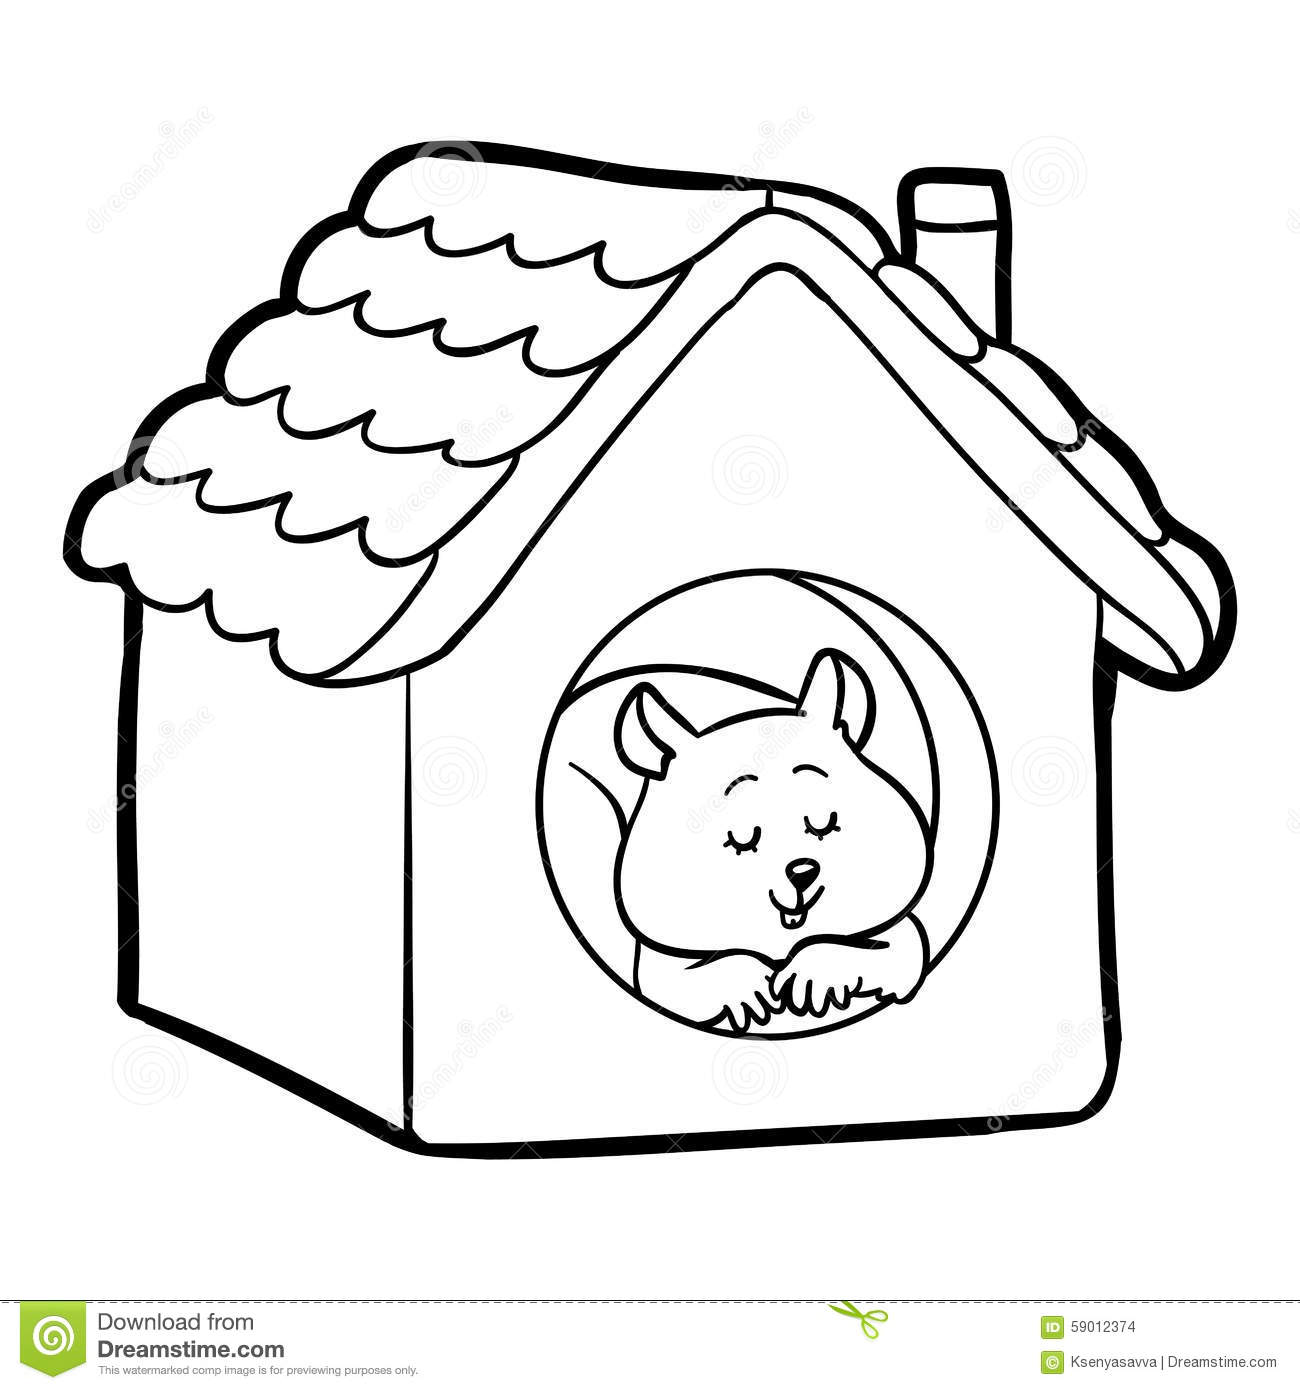 Coloring Book For Children: Hamster And House Stock Vector ...